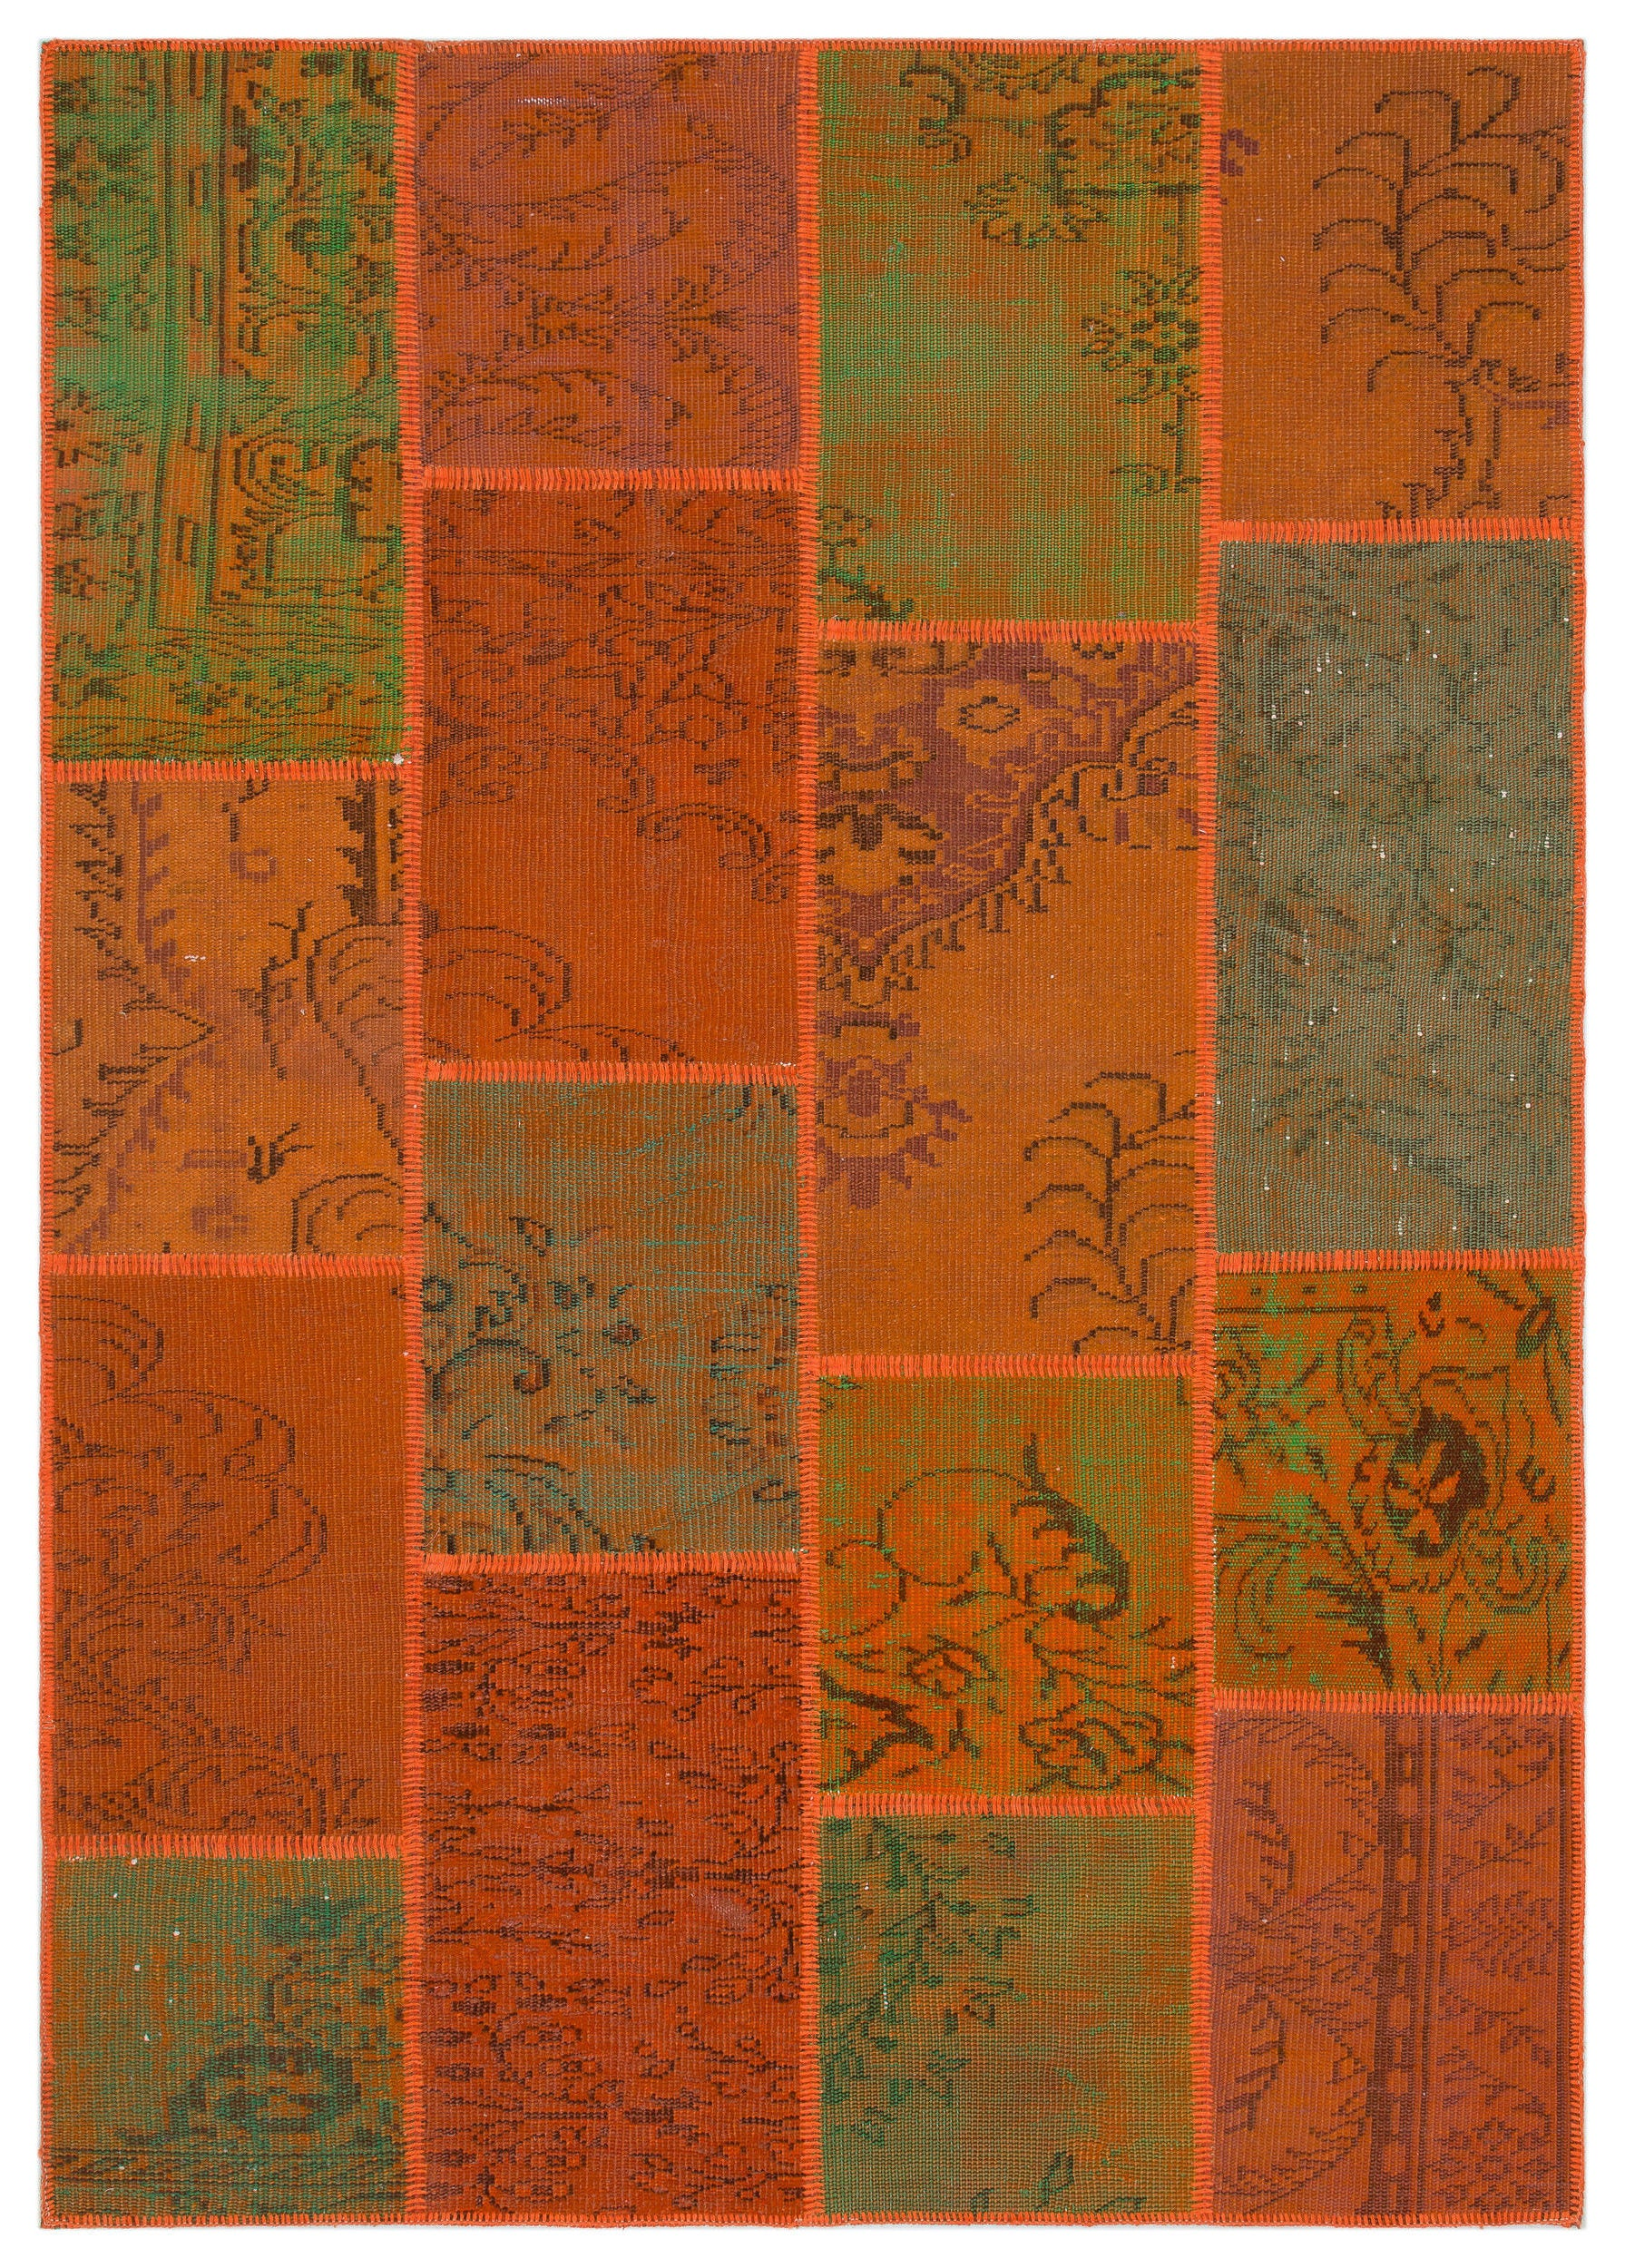 Orange Over Dyed Patchwork Unique Rug 5'3'' x 7'7'' ft 160 x 230 cm